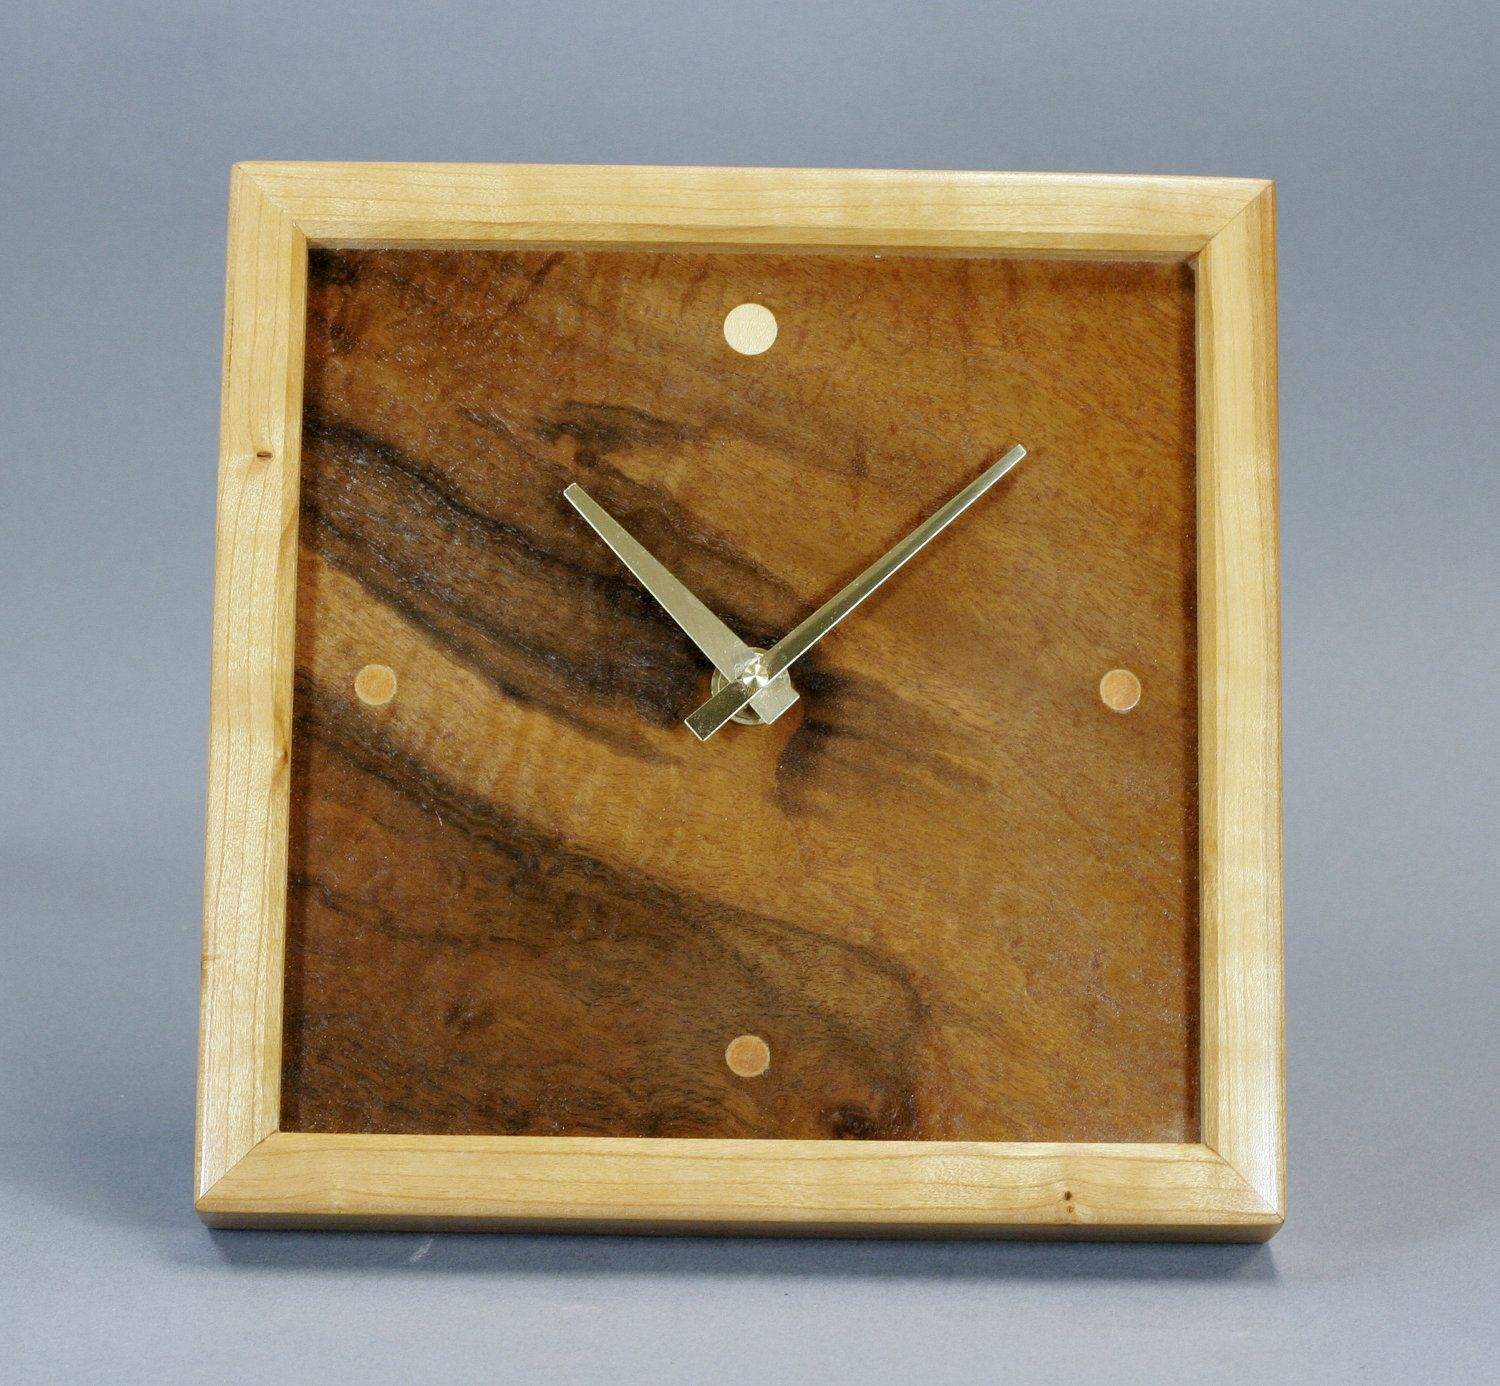 Walnut Burl Veneer And Cherry Wood Wall Mantle Clock 10 Inches Square No 61 Clouds 30 00 Via Etsy Wooden Clock Handmade Wood Crafts Cherry Wood